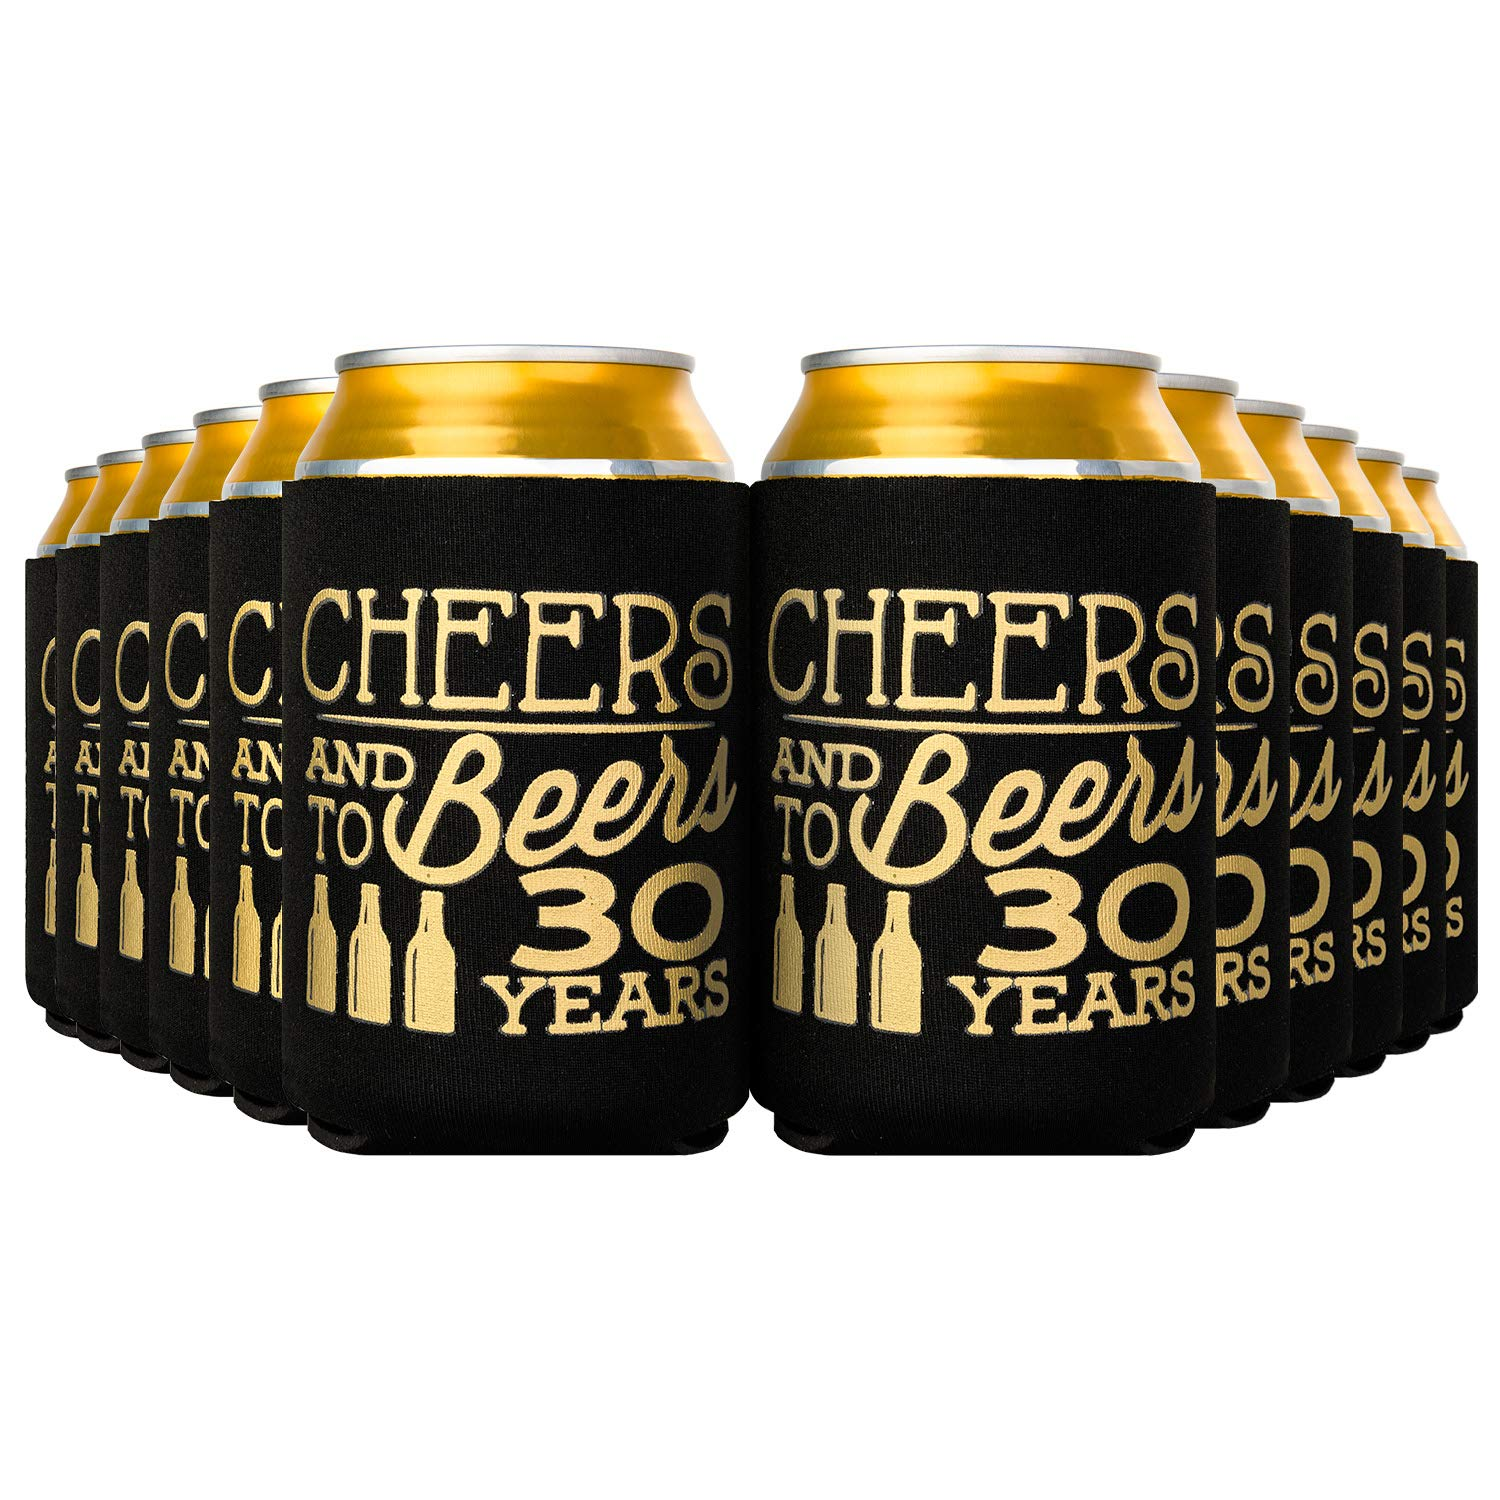 Crisky 30th Birthday Beer Sleeve,Cheers and Beers to 30 Years Birthday Decoration Party Favor Can Covers, 12-Ounce Neoprene Coolers for Soda, Beer, Can Beverage, 24 Pcs